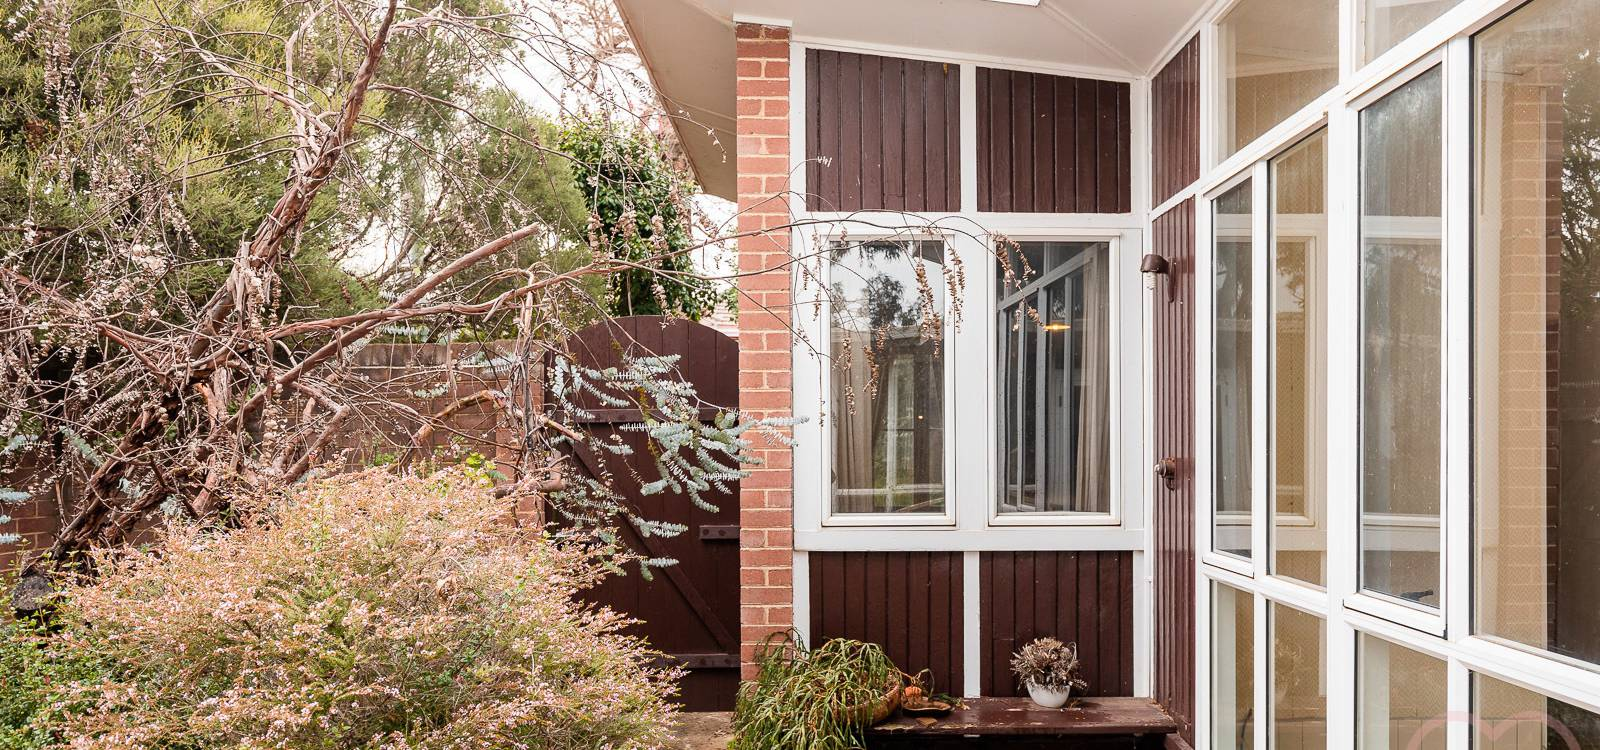 12 Creswell Street CAMPBELL, ACT 2612 - photo 1